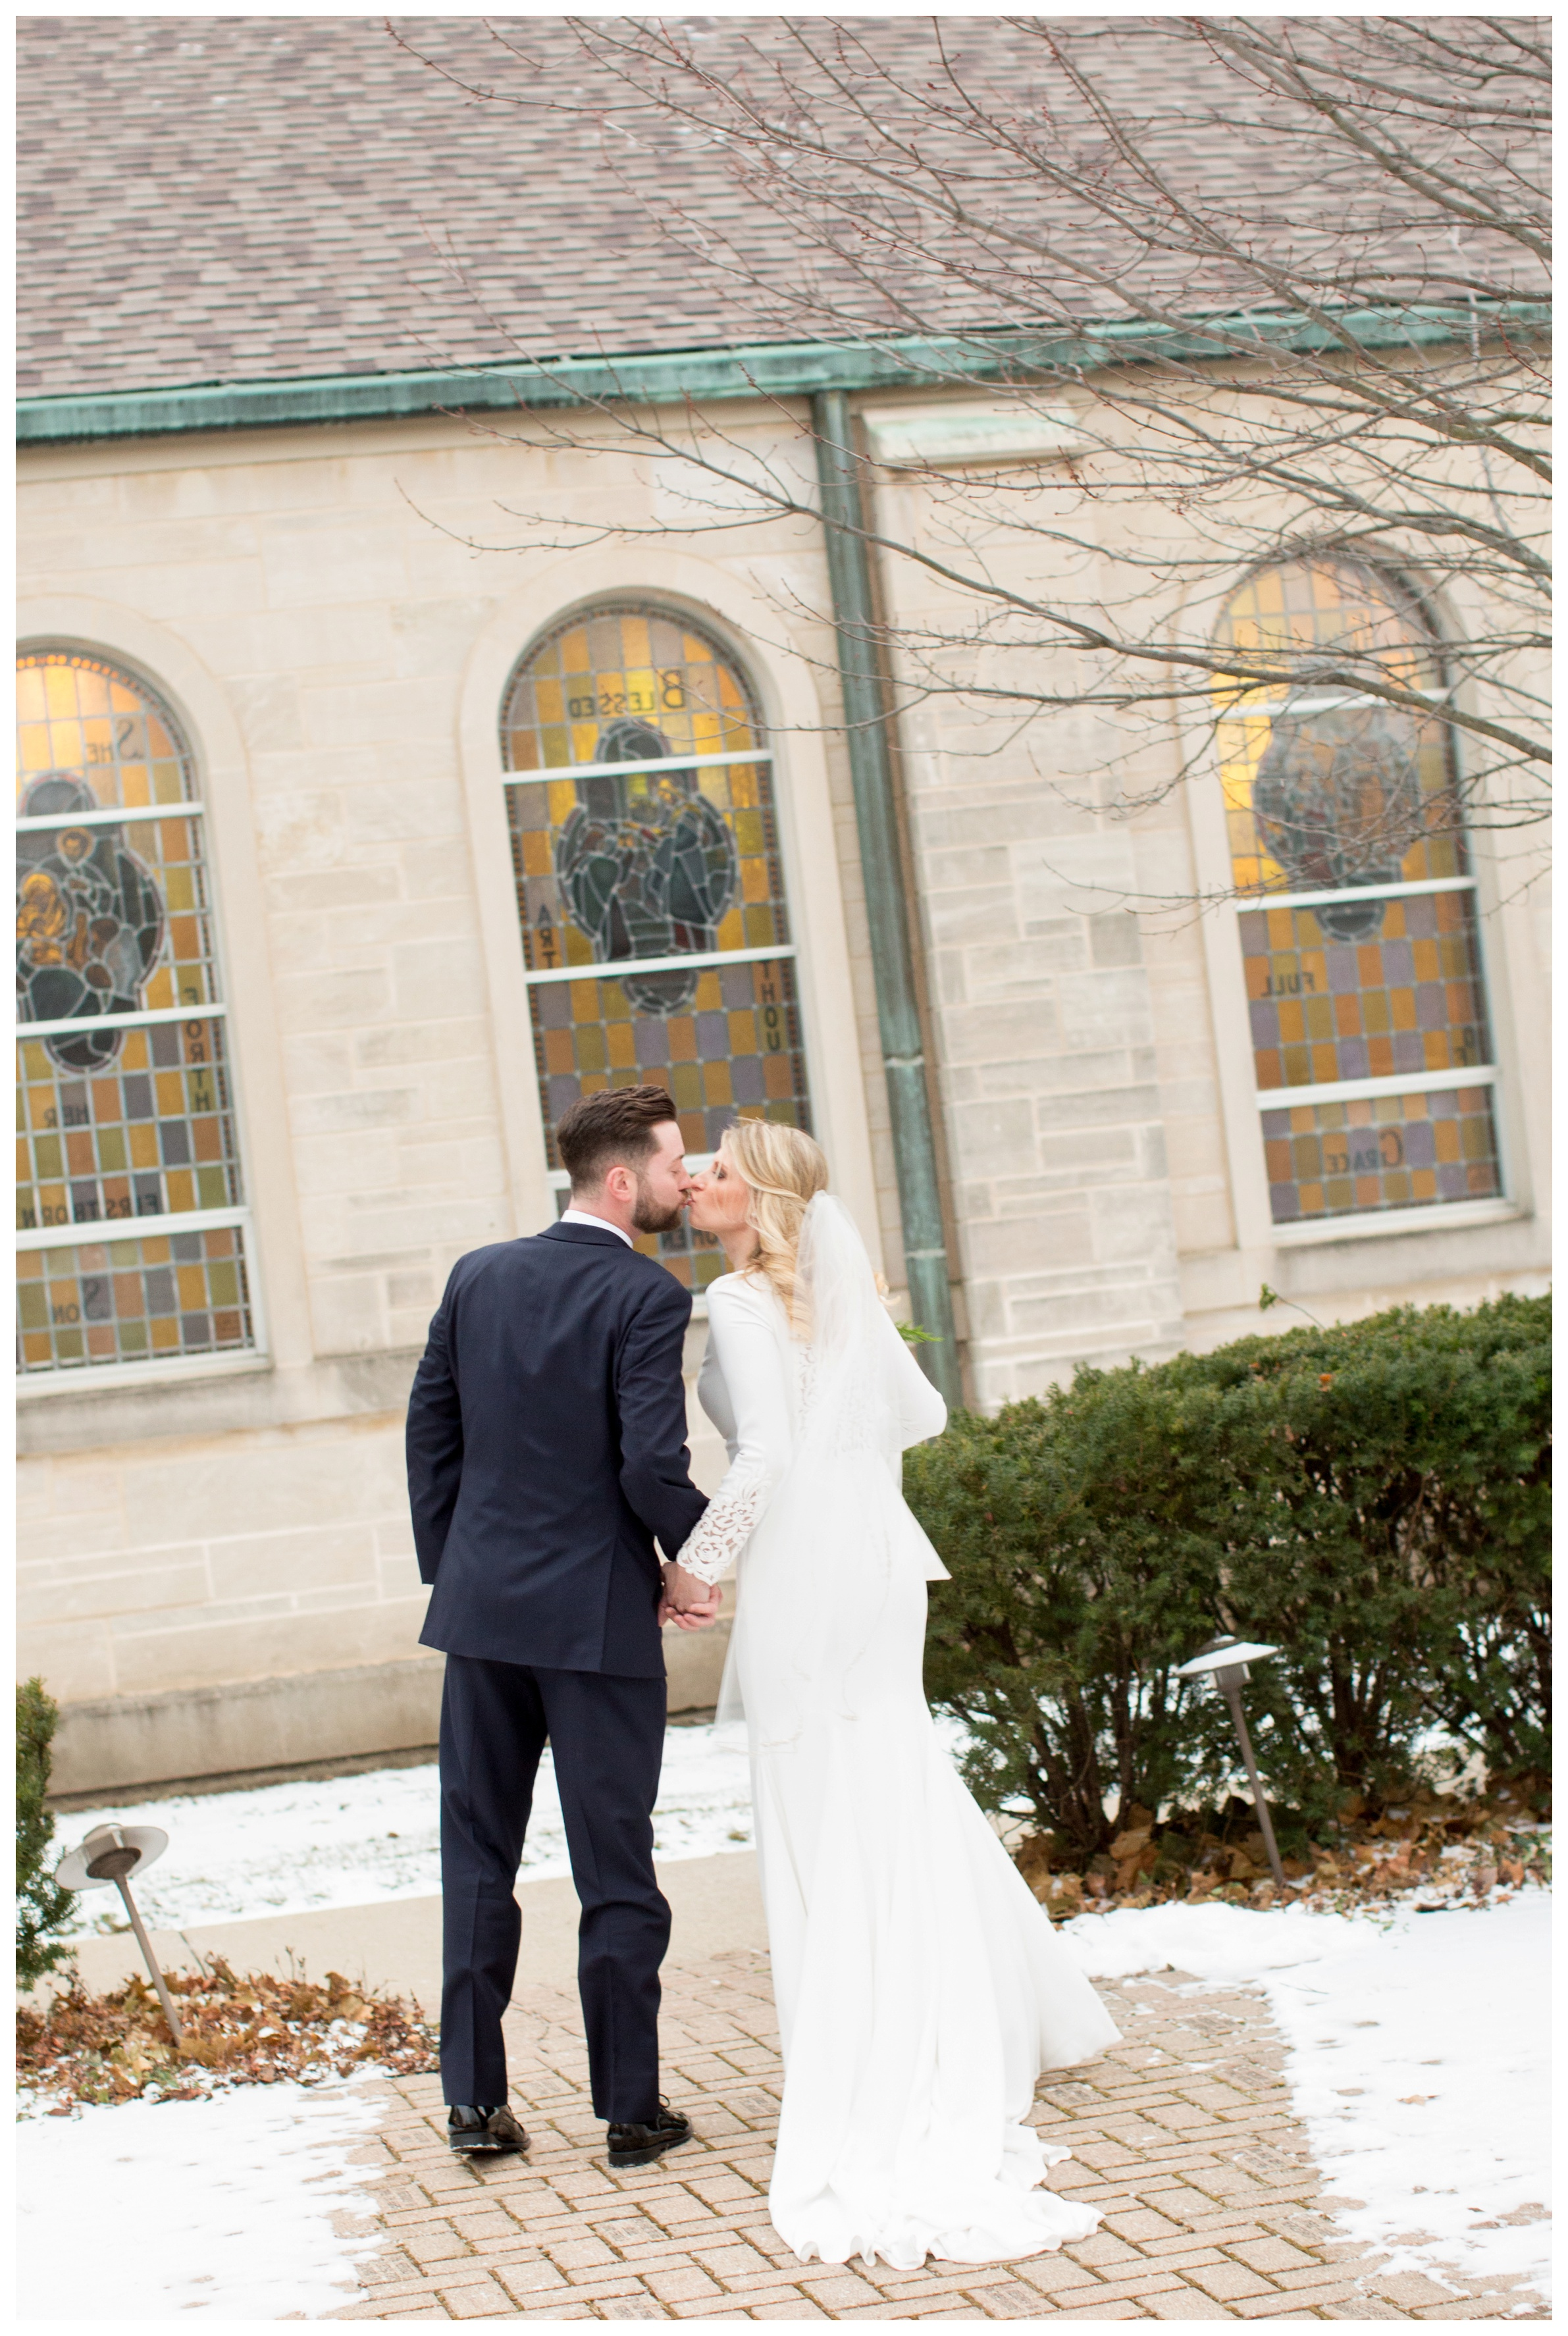 wedding-at-our-lady-of-the-wayside-church